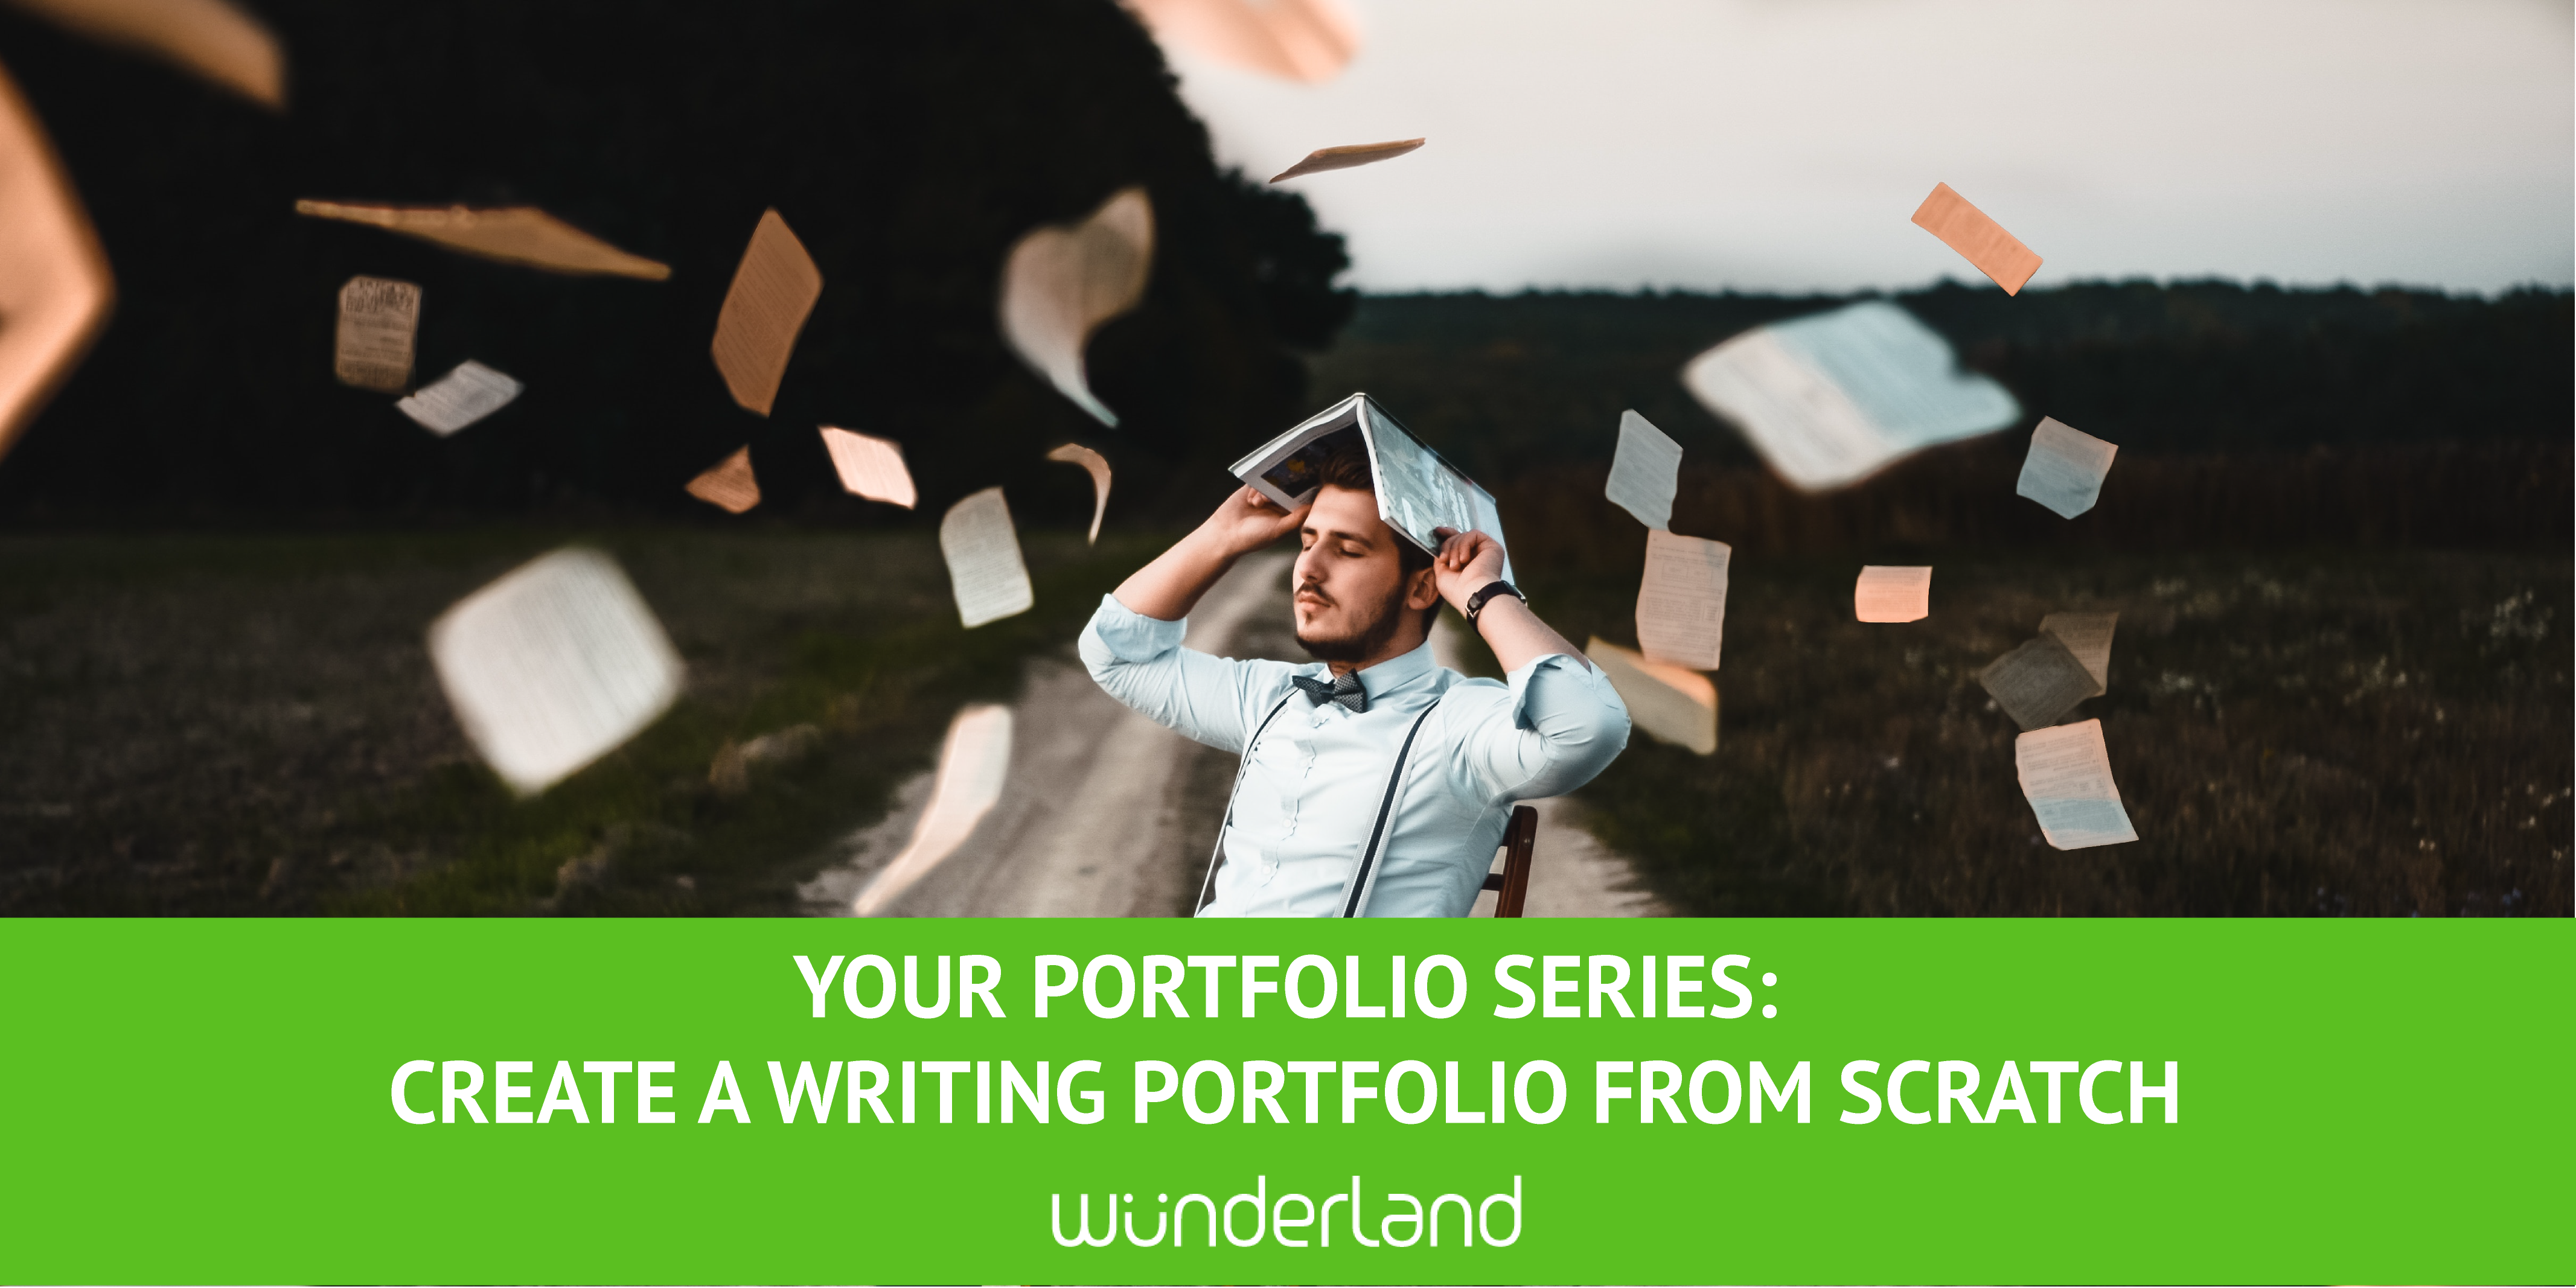 Creating a Writing Portfolio from Scratch